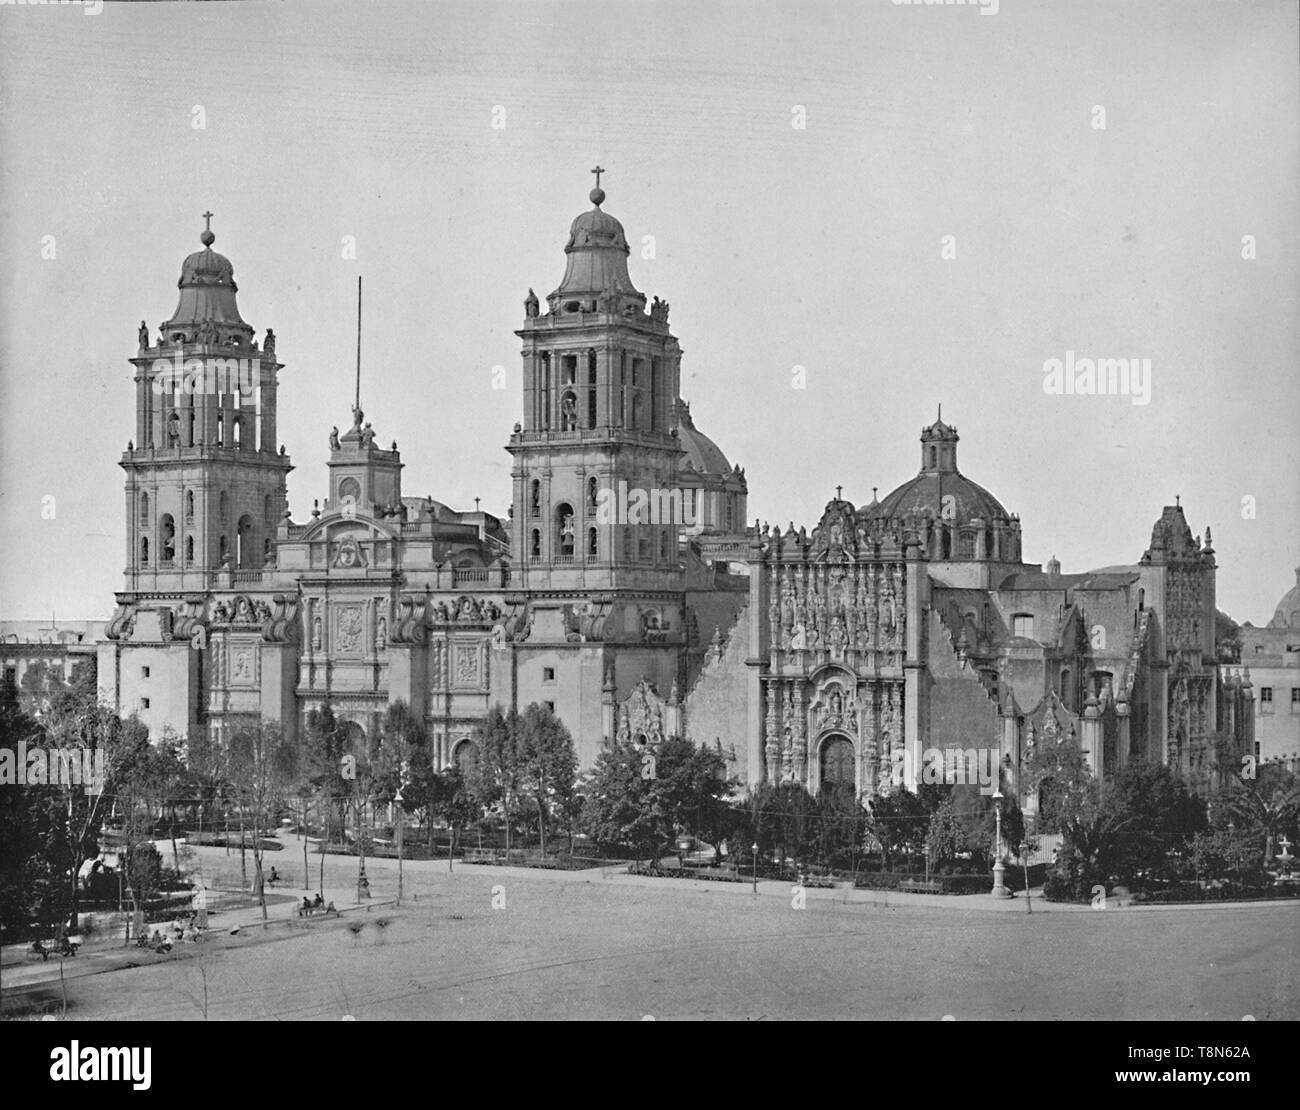 """'The Cathedral, City of Mexico', c1897. Built from 1573 to 1813, on the site of the Templo Mayor, a former sacred Aztec city with original designs by Claudio de Arciniega.  From """"A Tour Through the New World America"""", by Prof. Geo. R. Cromwell. [C. N. Greig & Co., London, c1897] - Stock Image"""